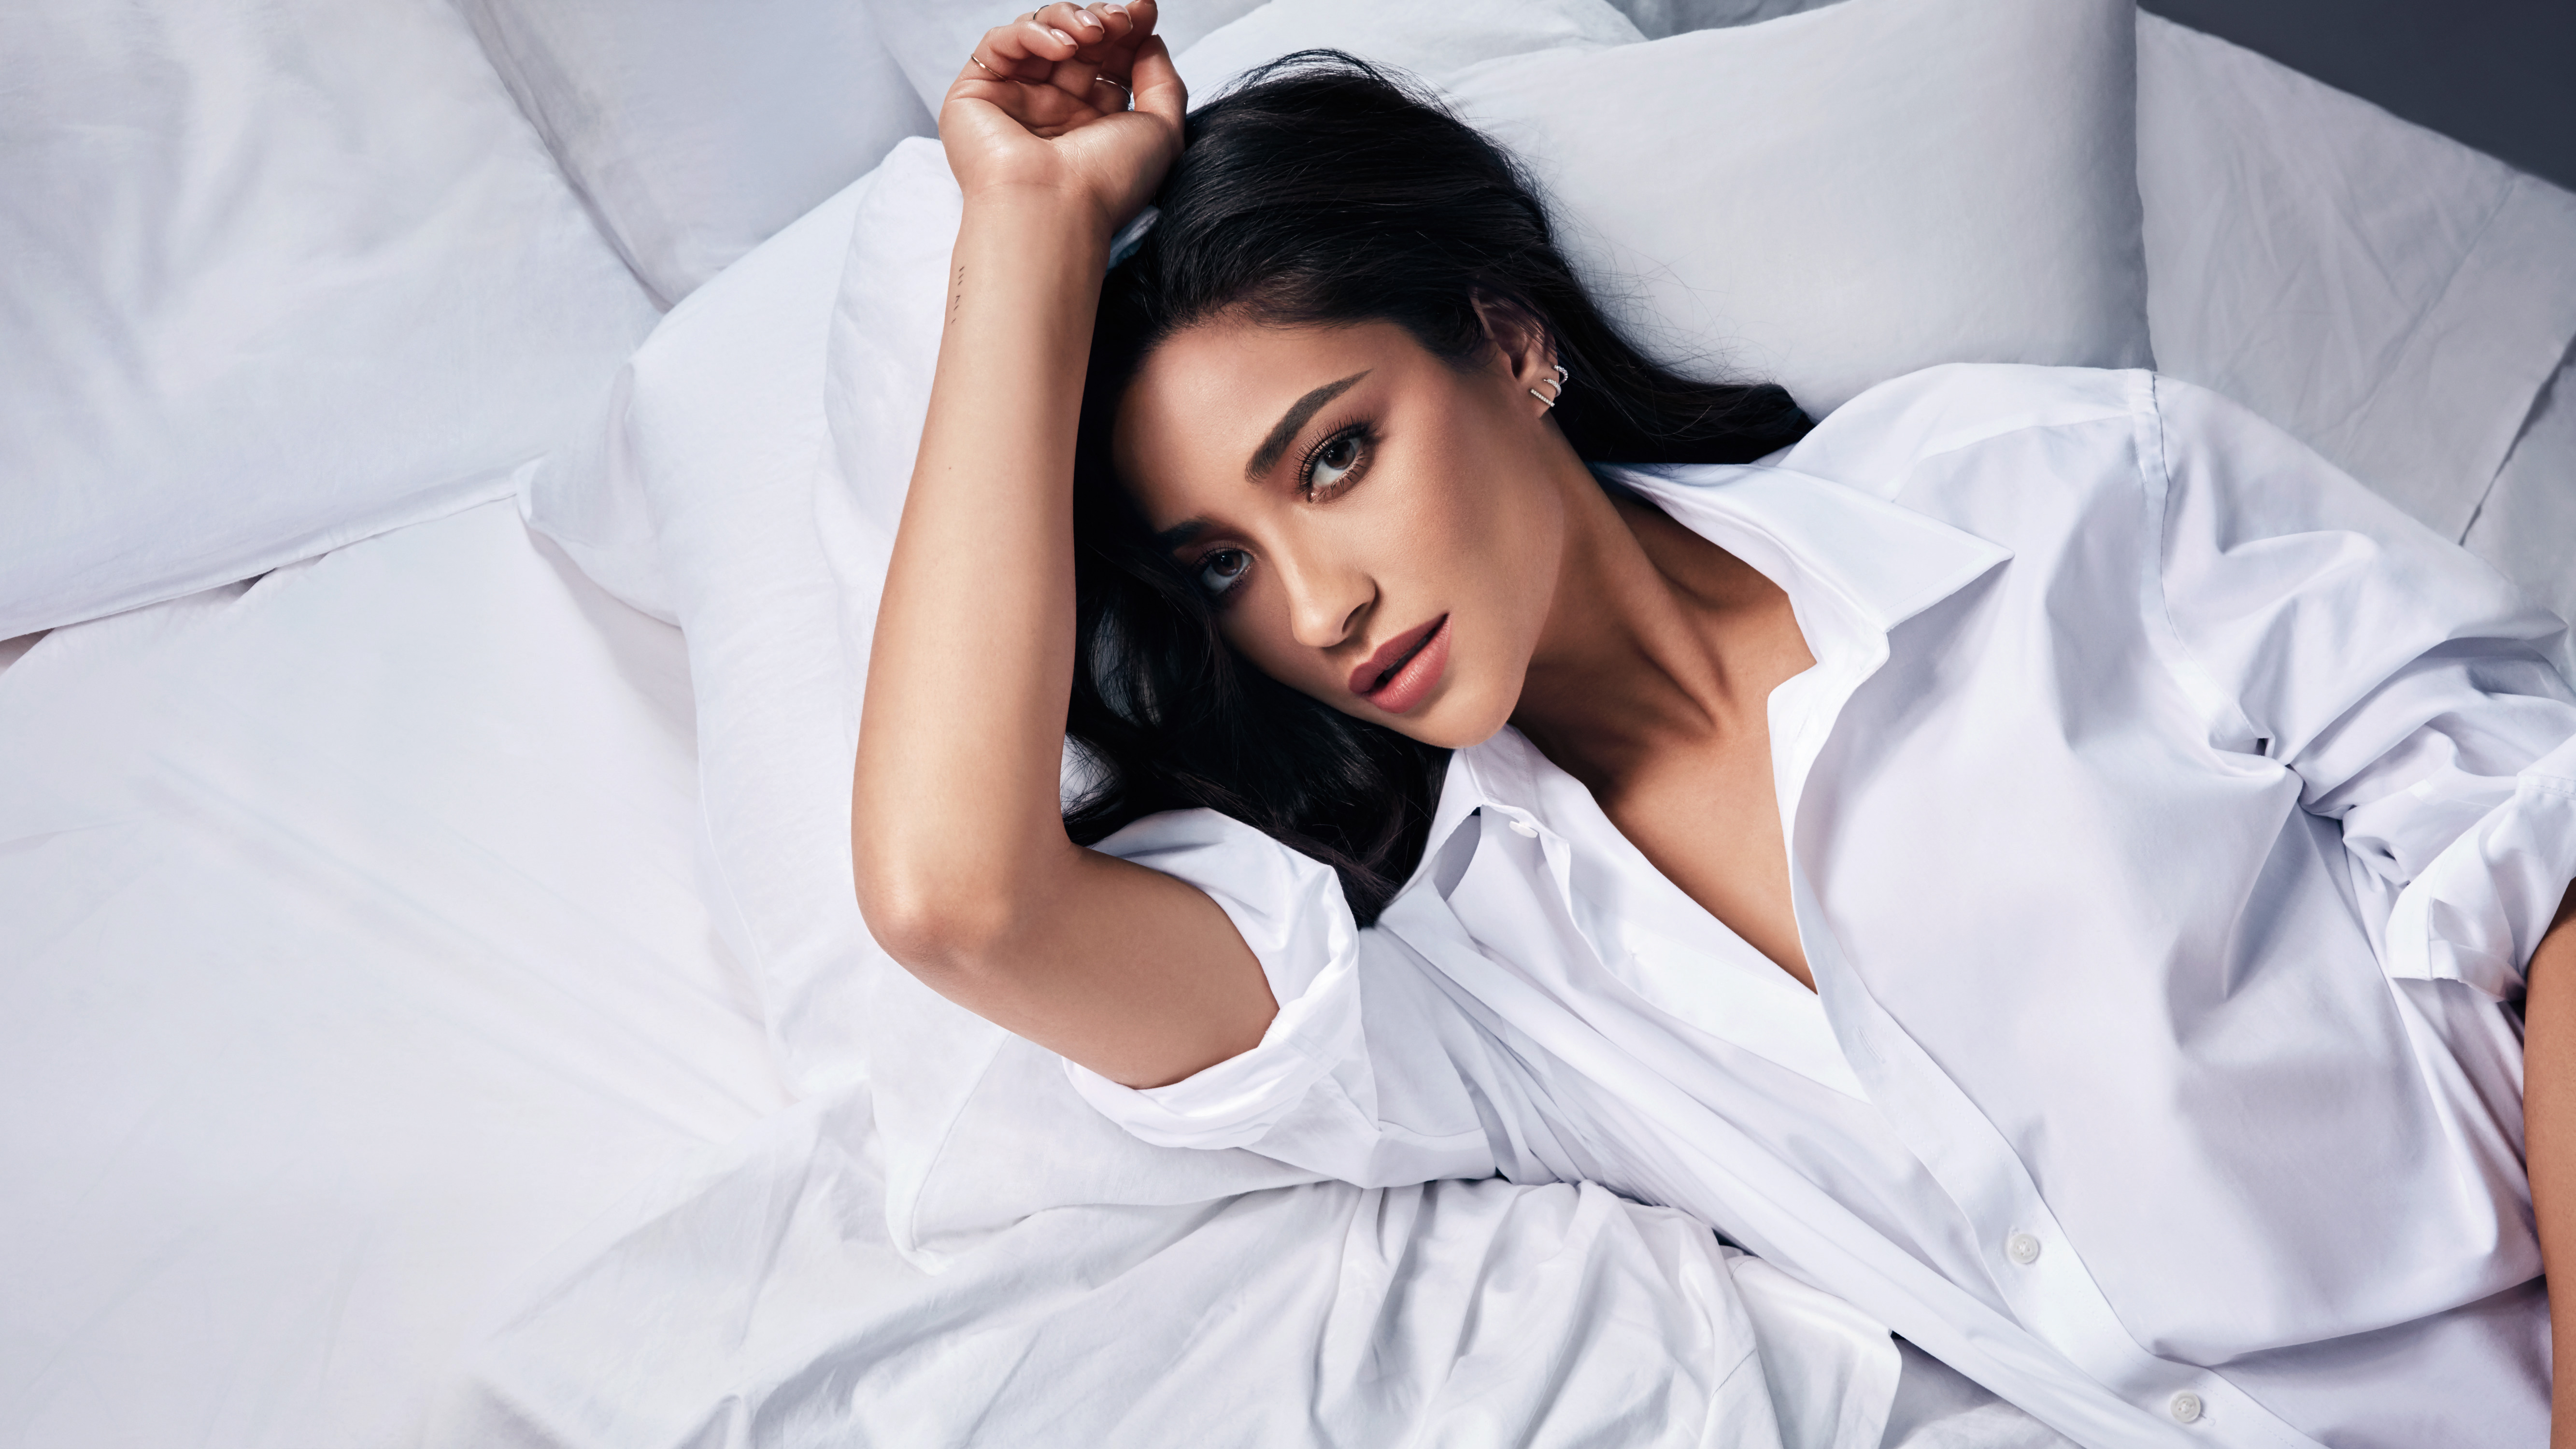 5333x3000 - Shay Mitchell Wallpapers 24